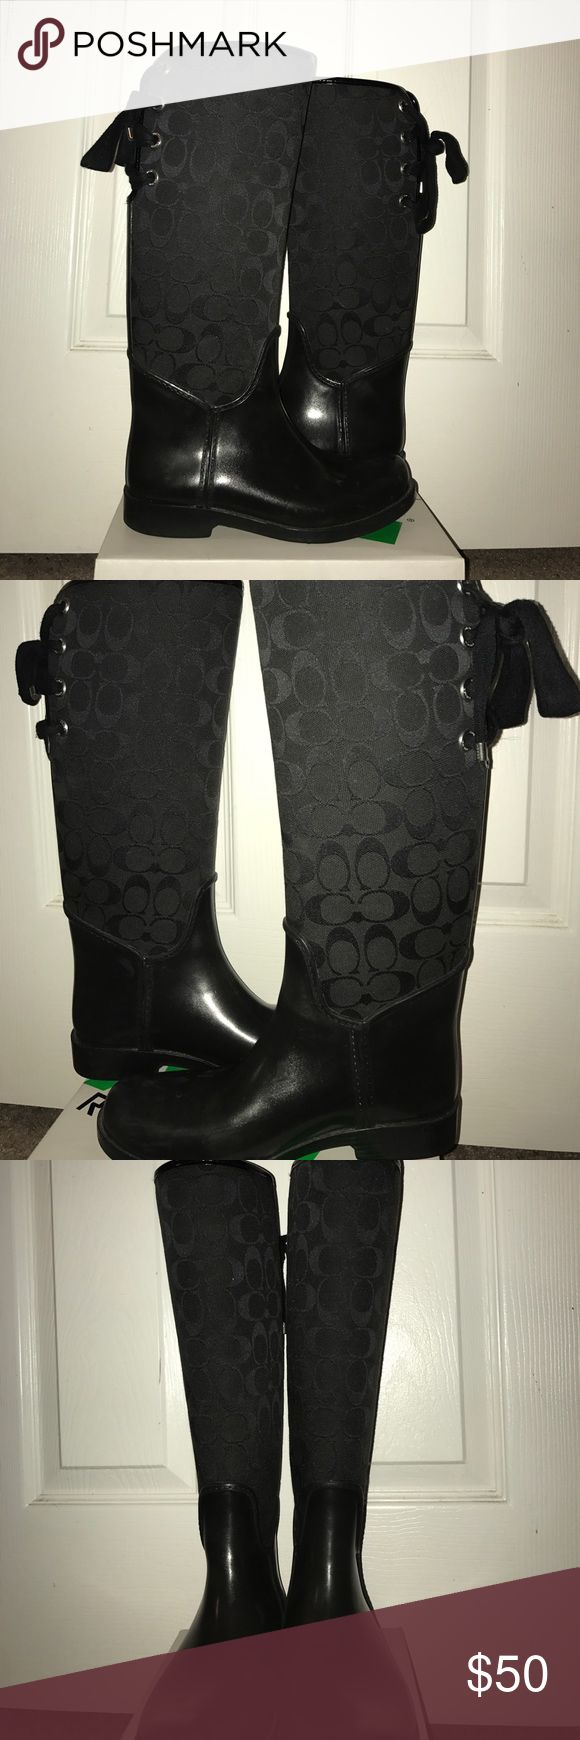 Coach Rain Boots Size 7 Black Coach Rain Boots, Size 7, they have some scuff marks as shown in pics, still in good condition!! Offers are always considered! Let me know if you have any questions!:)) Coach Shoes Winter & Rain Boots